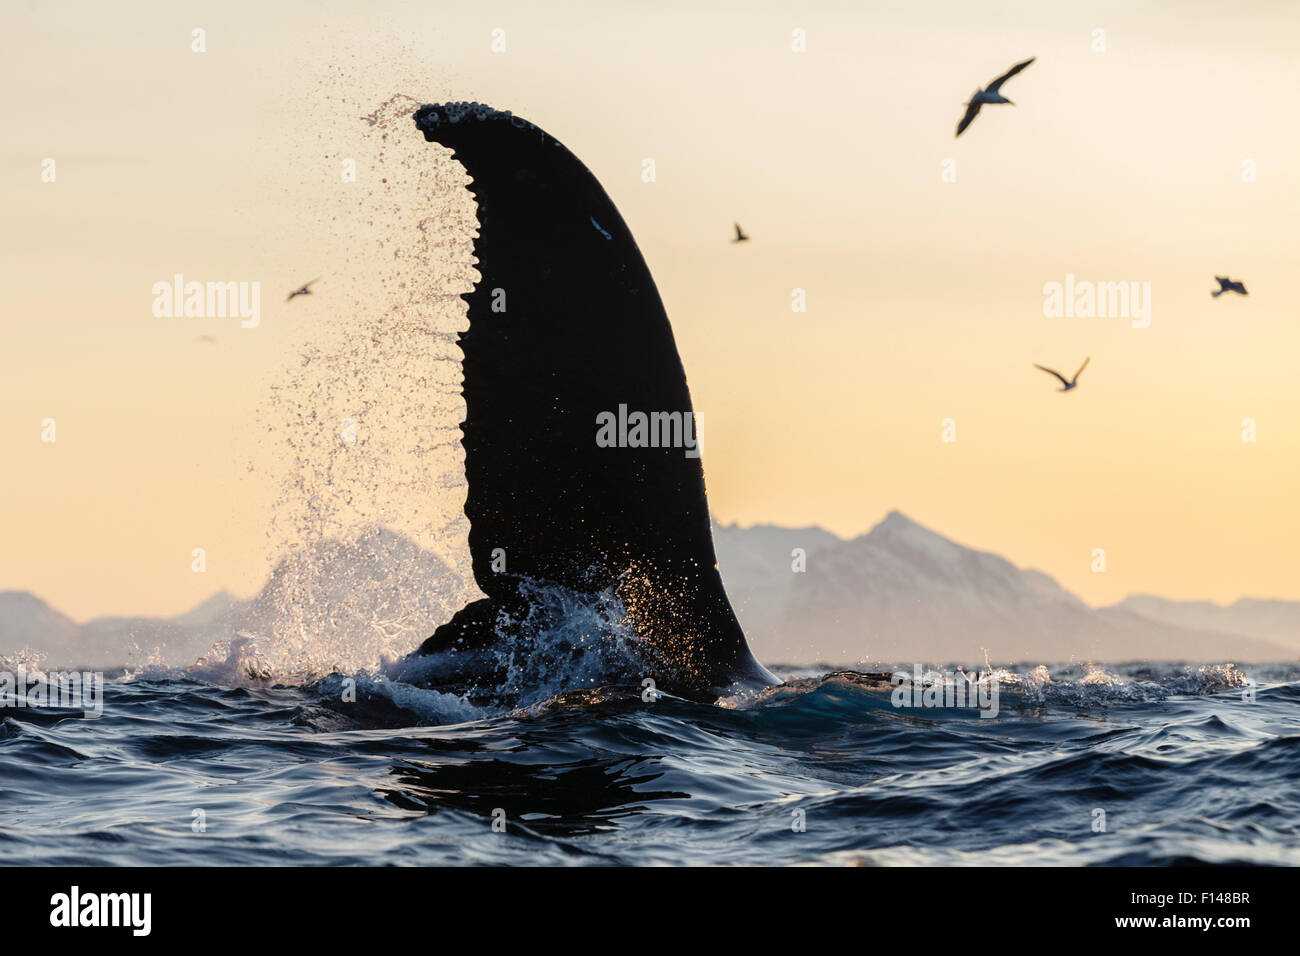 Humpback whale (Megaptera novaeangliae) with fin above water, Andfjorden close to Andoya, Nordland, Northern Norway. - Stock Image